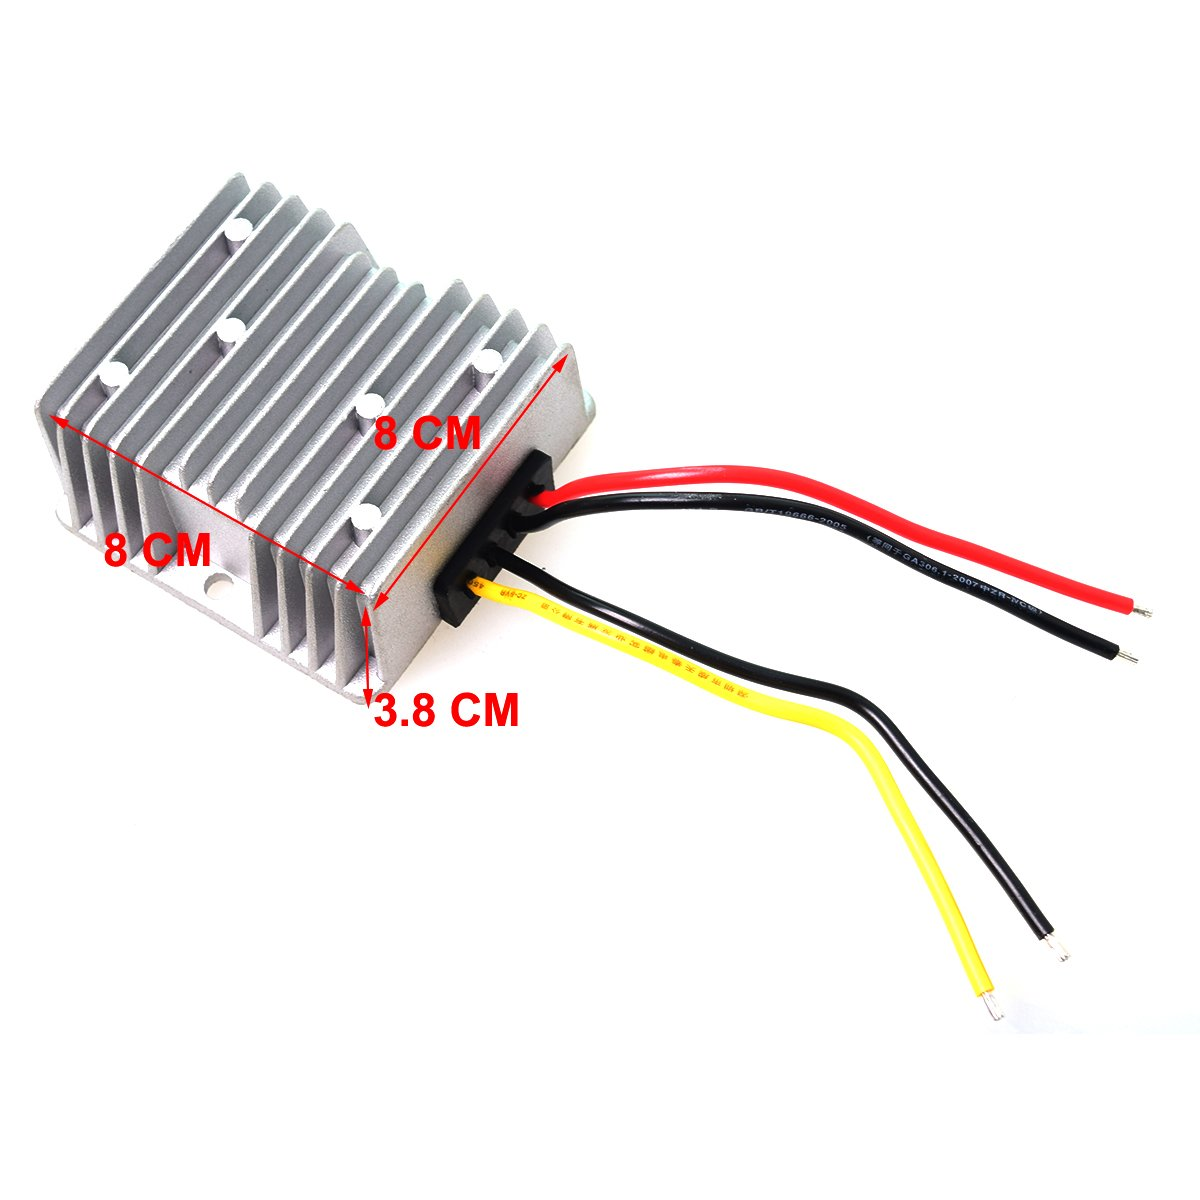 Dc 12v To 24v Step Up Converter Regulator 10a 240w Power Automotive 20v For Audio Amplifier Circuit Supply Adapter Motor Car Truck Vehicle Boat Solar System Etcaccept Dc9